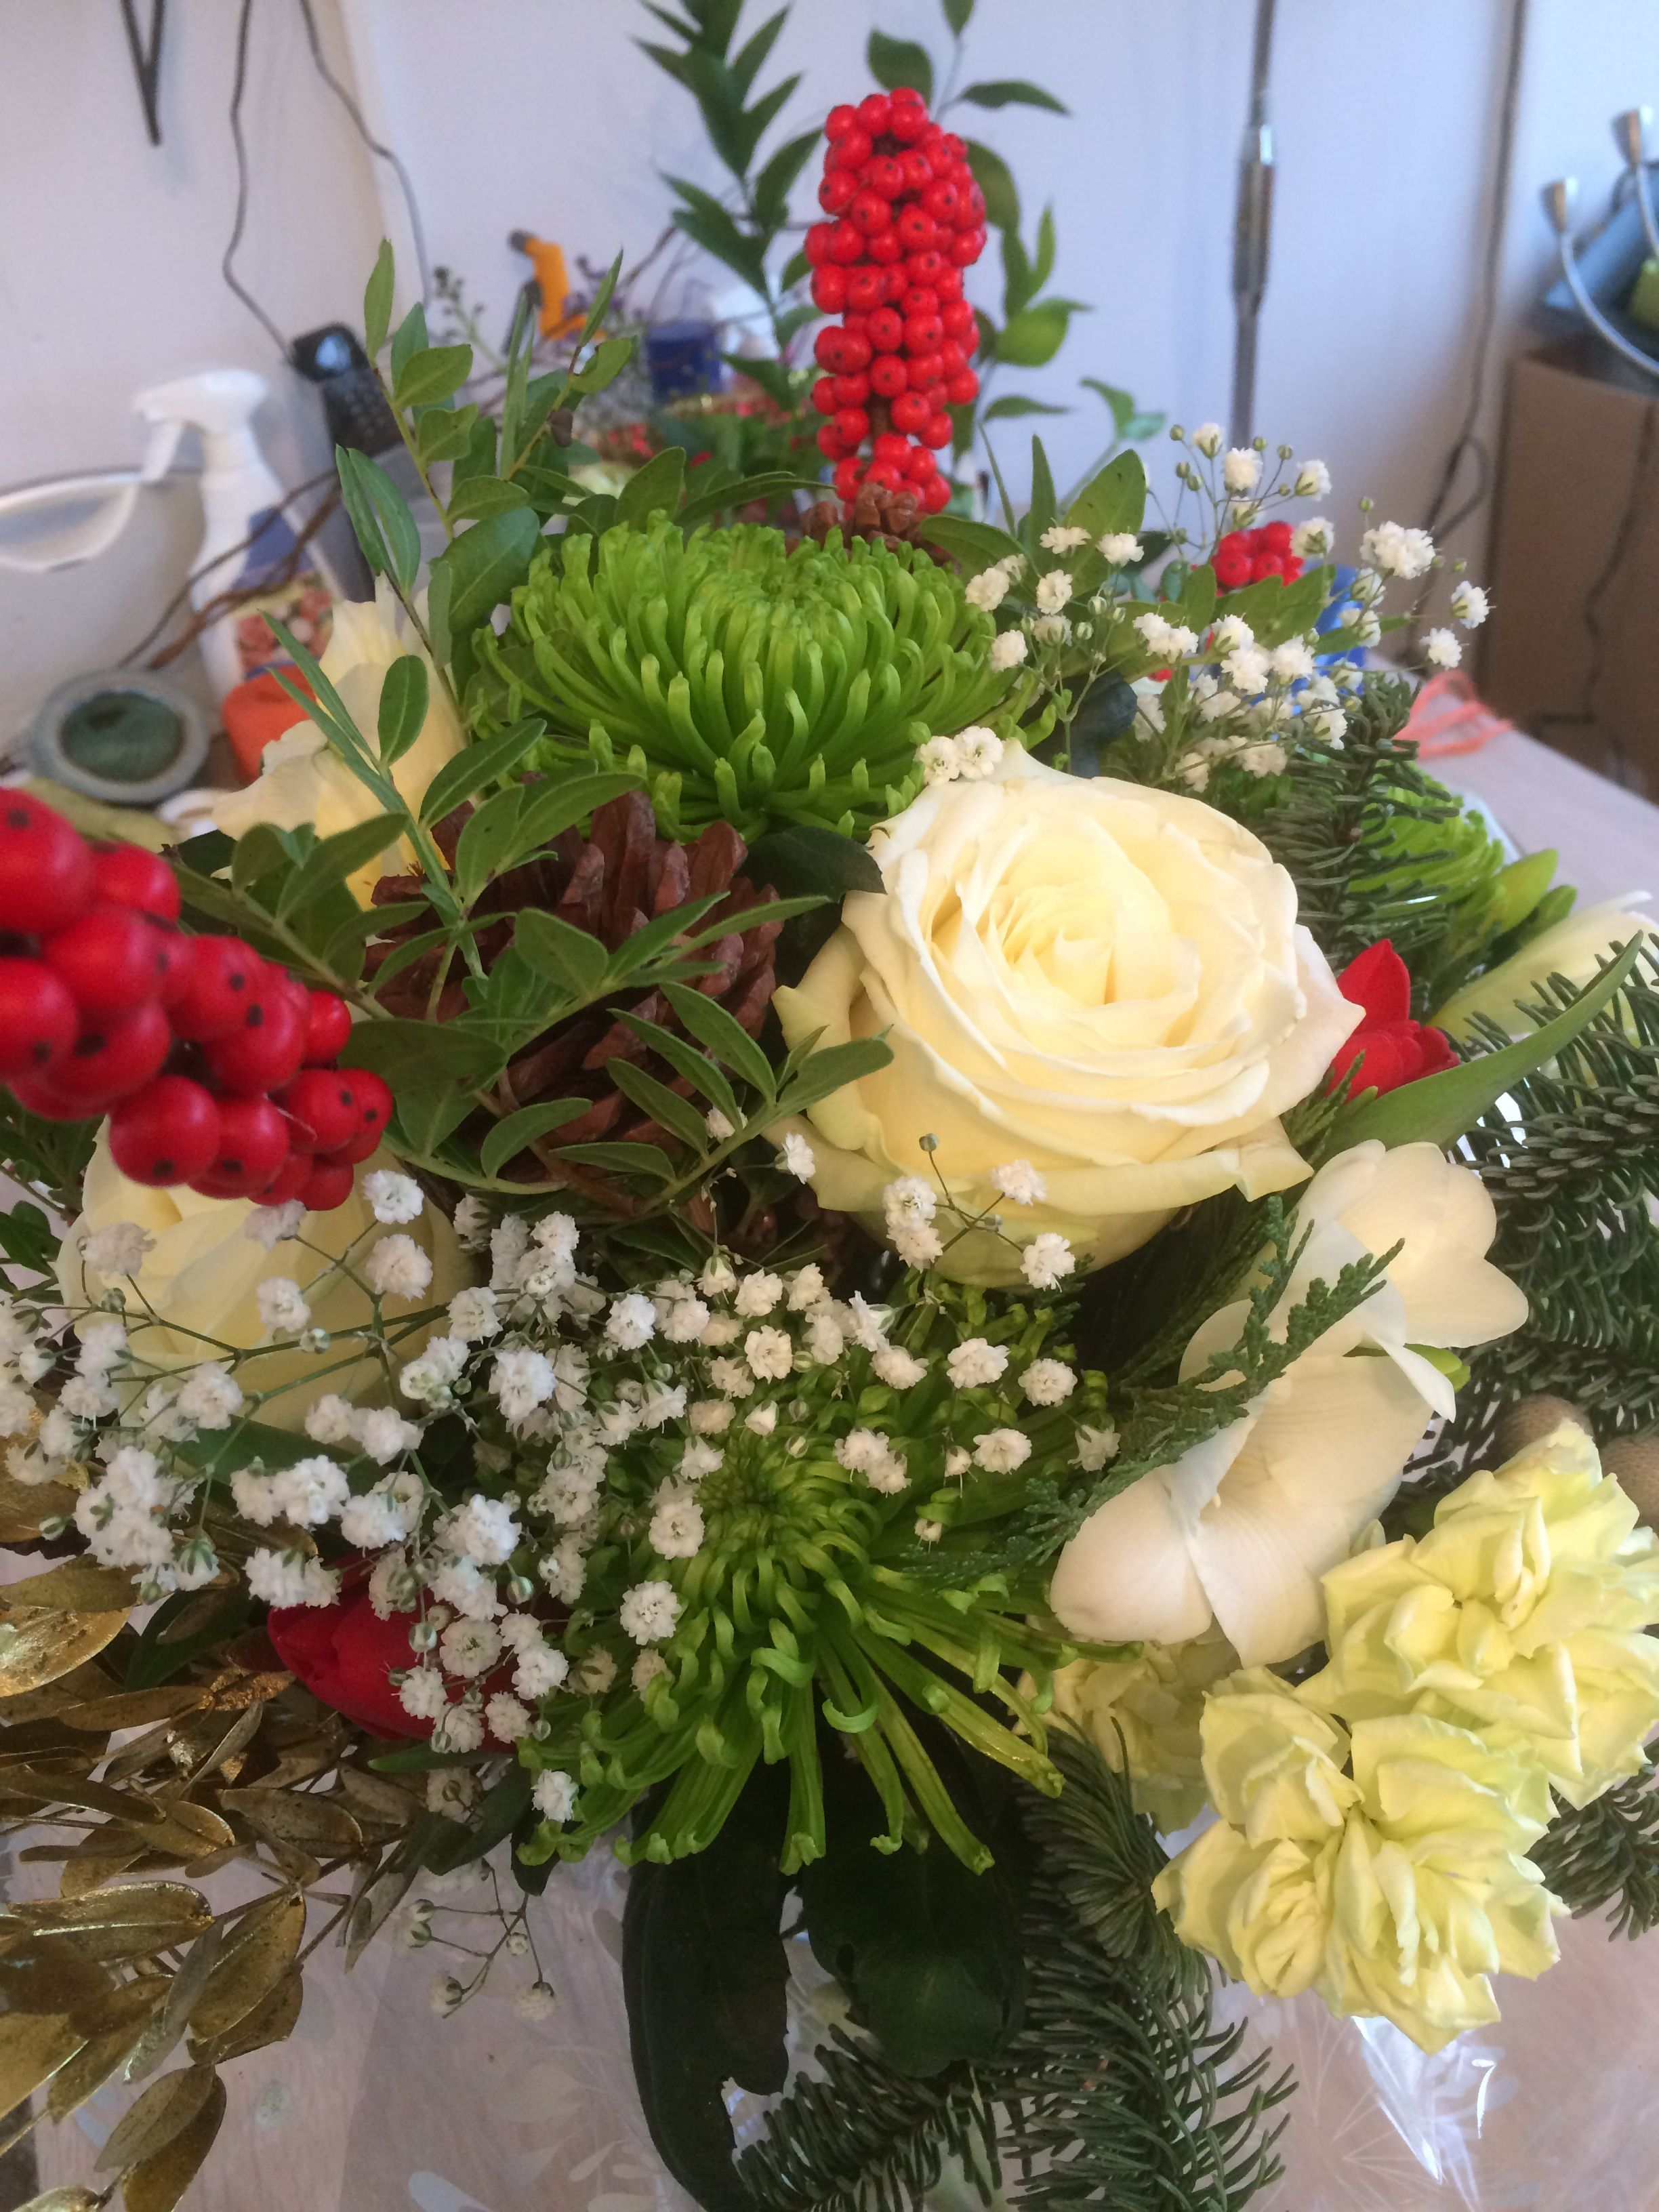 Seasonal christmas luxury gift flower bouquet created by willow willow house flowers aylesbury florist free same day delivery in aylesbury bucks local on line florist for next day local delivery flowers bouquets izmirmasajfo